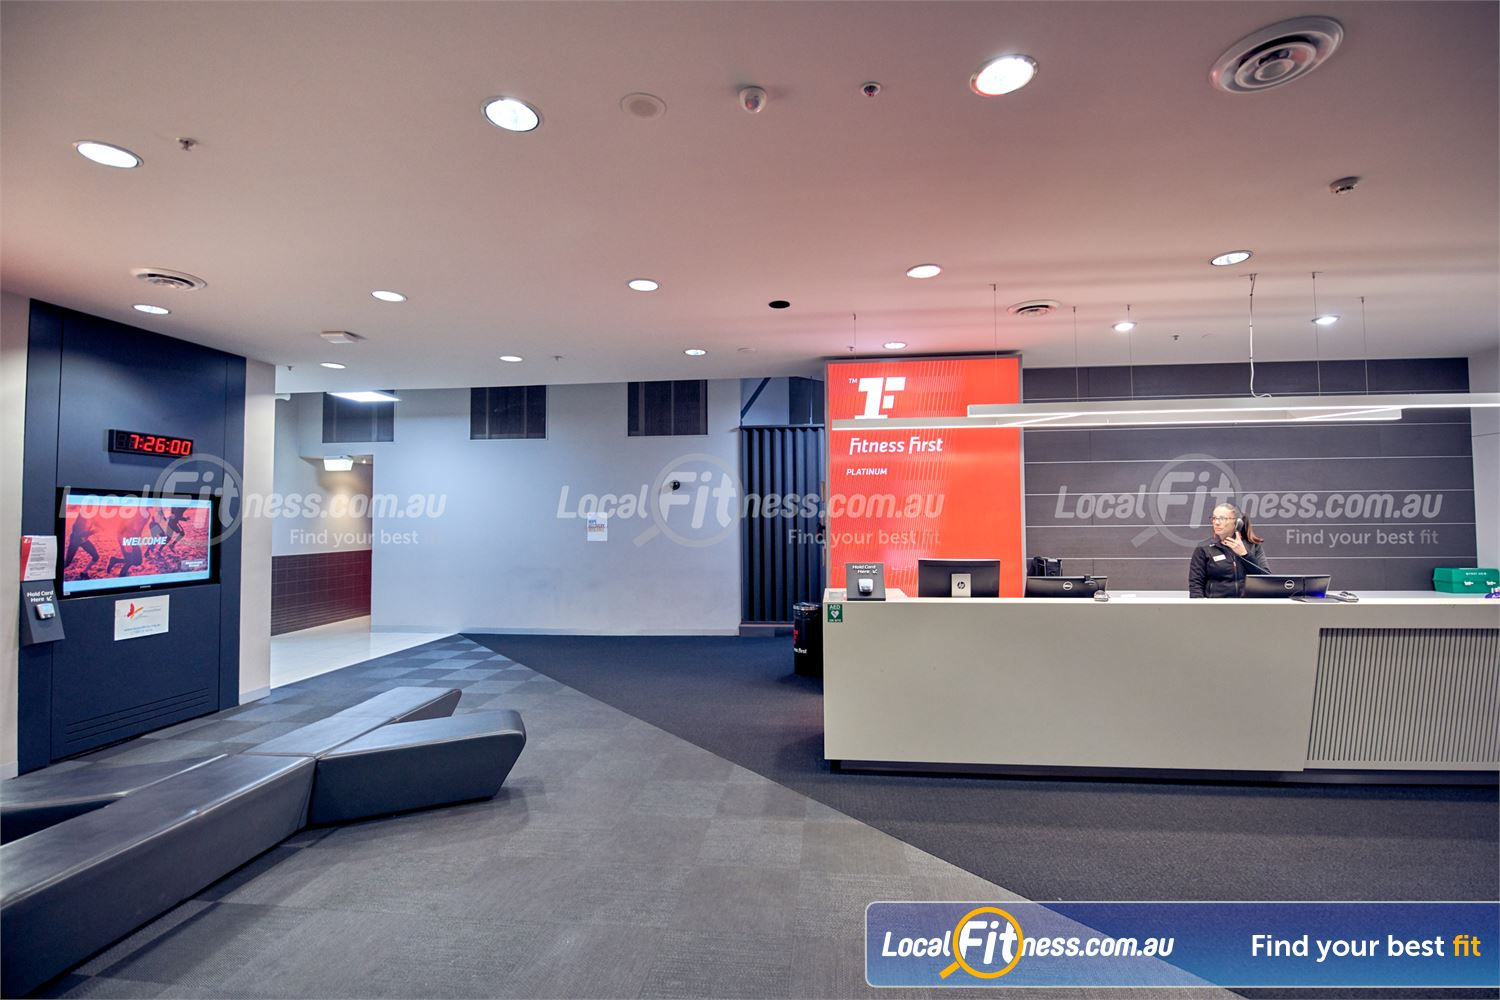 Fitness First Melbourne Central Platinum Near South Melbourne Our friendly team will welcome you to Fitness First Platinum Melbourne Central.